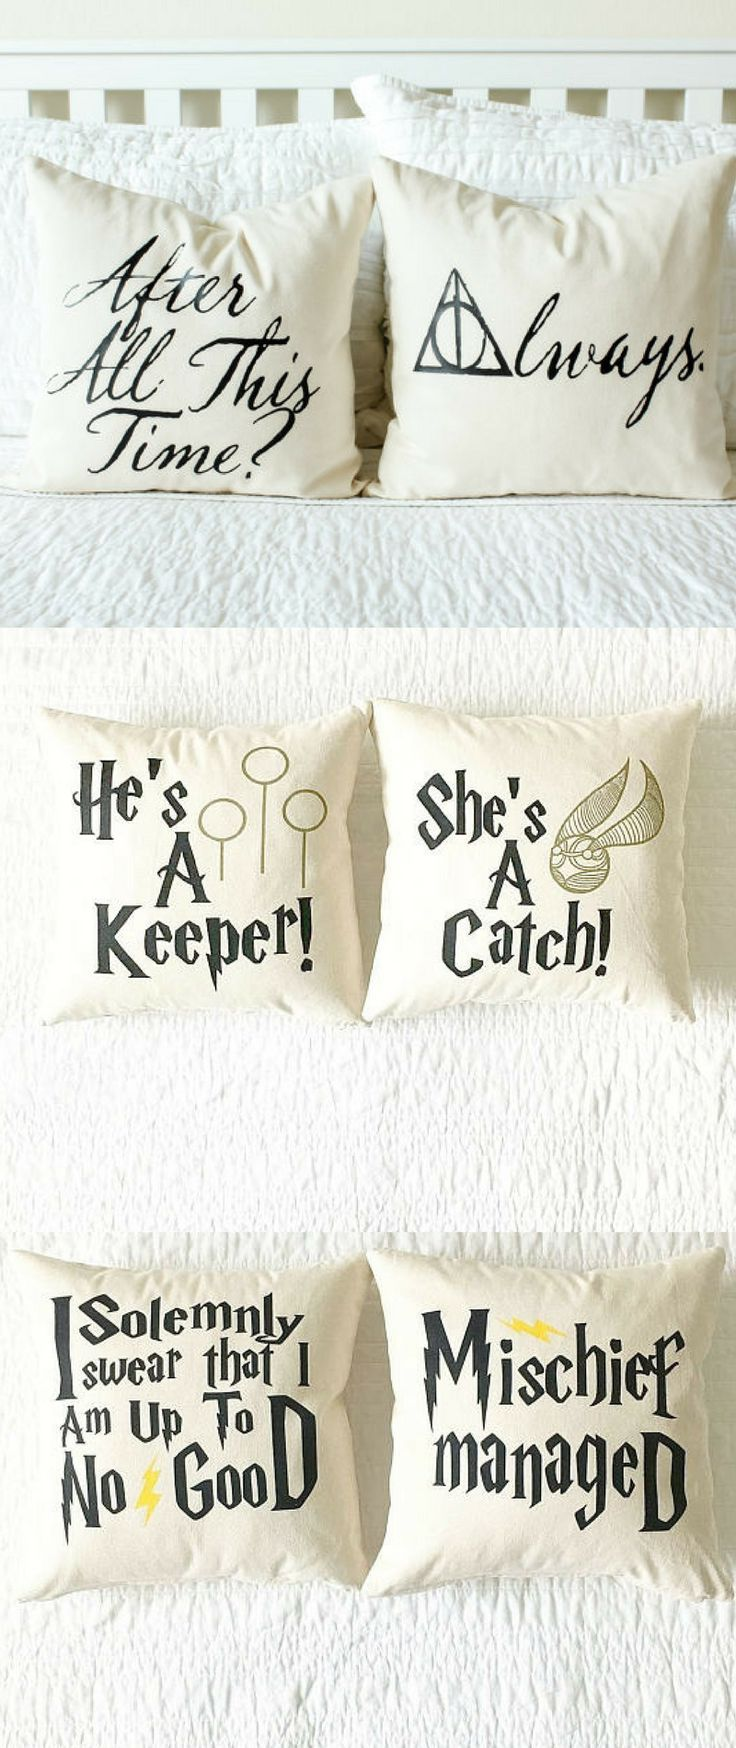 """My inner Potterhead is in love with these cozy Harry Potter Throw Pillows! Sweet phrases for your better half, such as Snape's """"After all this time?""""...""""Always"""" and He's a Keeper & She's a Catch. Loving the nod to the Marauder's Map with Mischief Managed and I Solemnly Swear I am up to no good. Need all of these right now! #Potterhead #HarryPotter #FarmhouseDecor #RusticDecor #affiliate #ThrowPillows #GiftsForHim #FarmhouseLiving #MischiefManaged #GiftsForHer"""